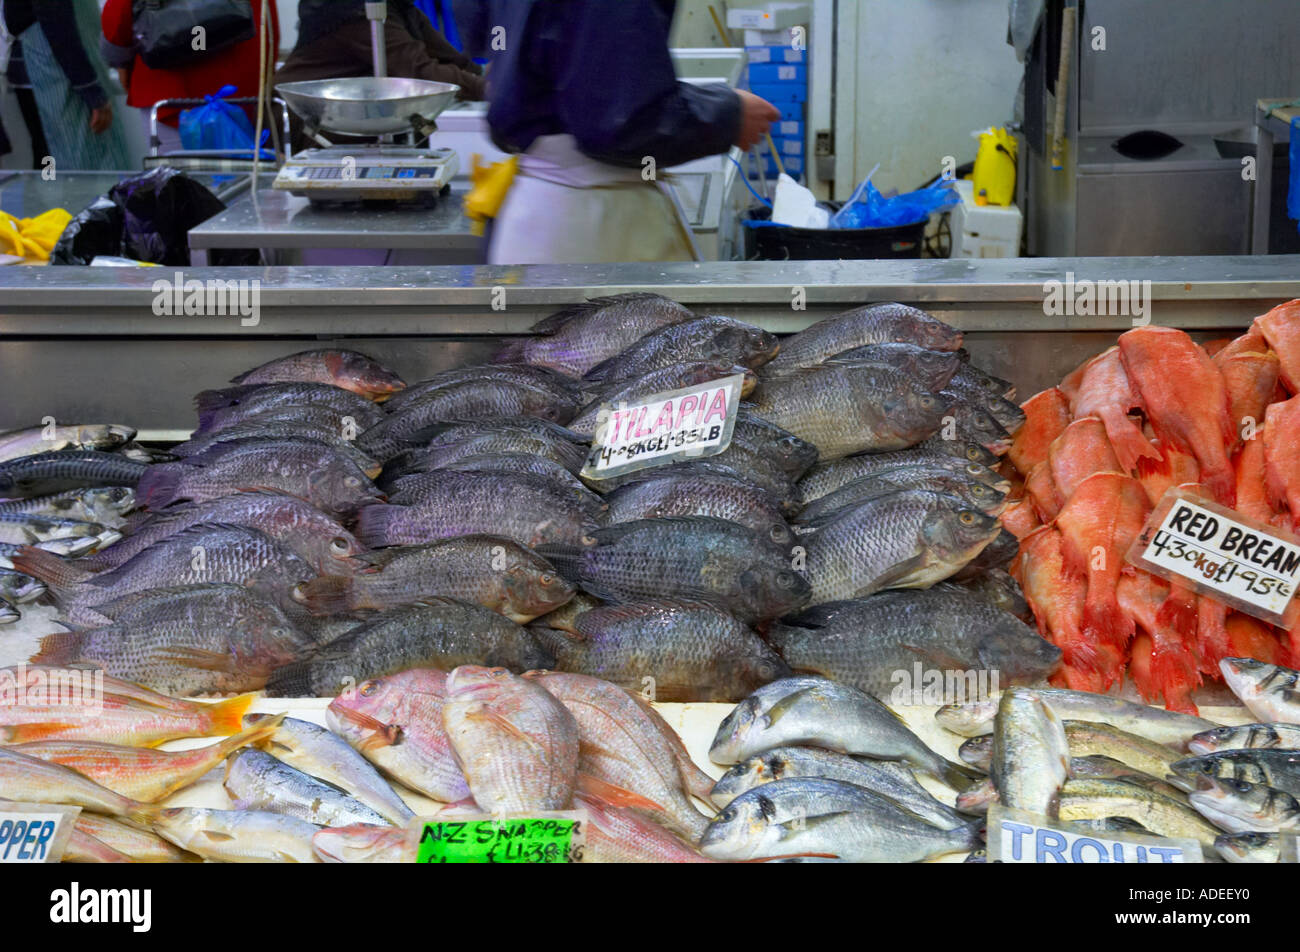 Seafood at queens market in upton park east london uk for Fish market queens